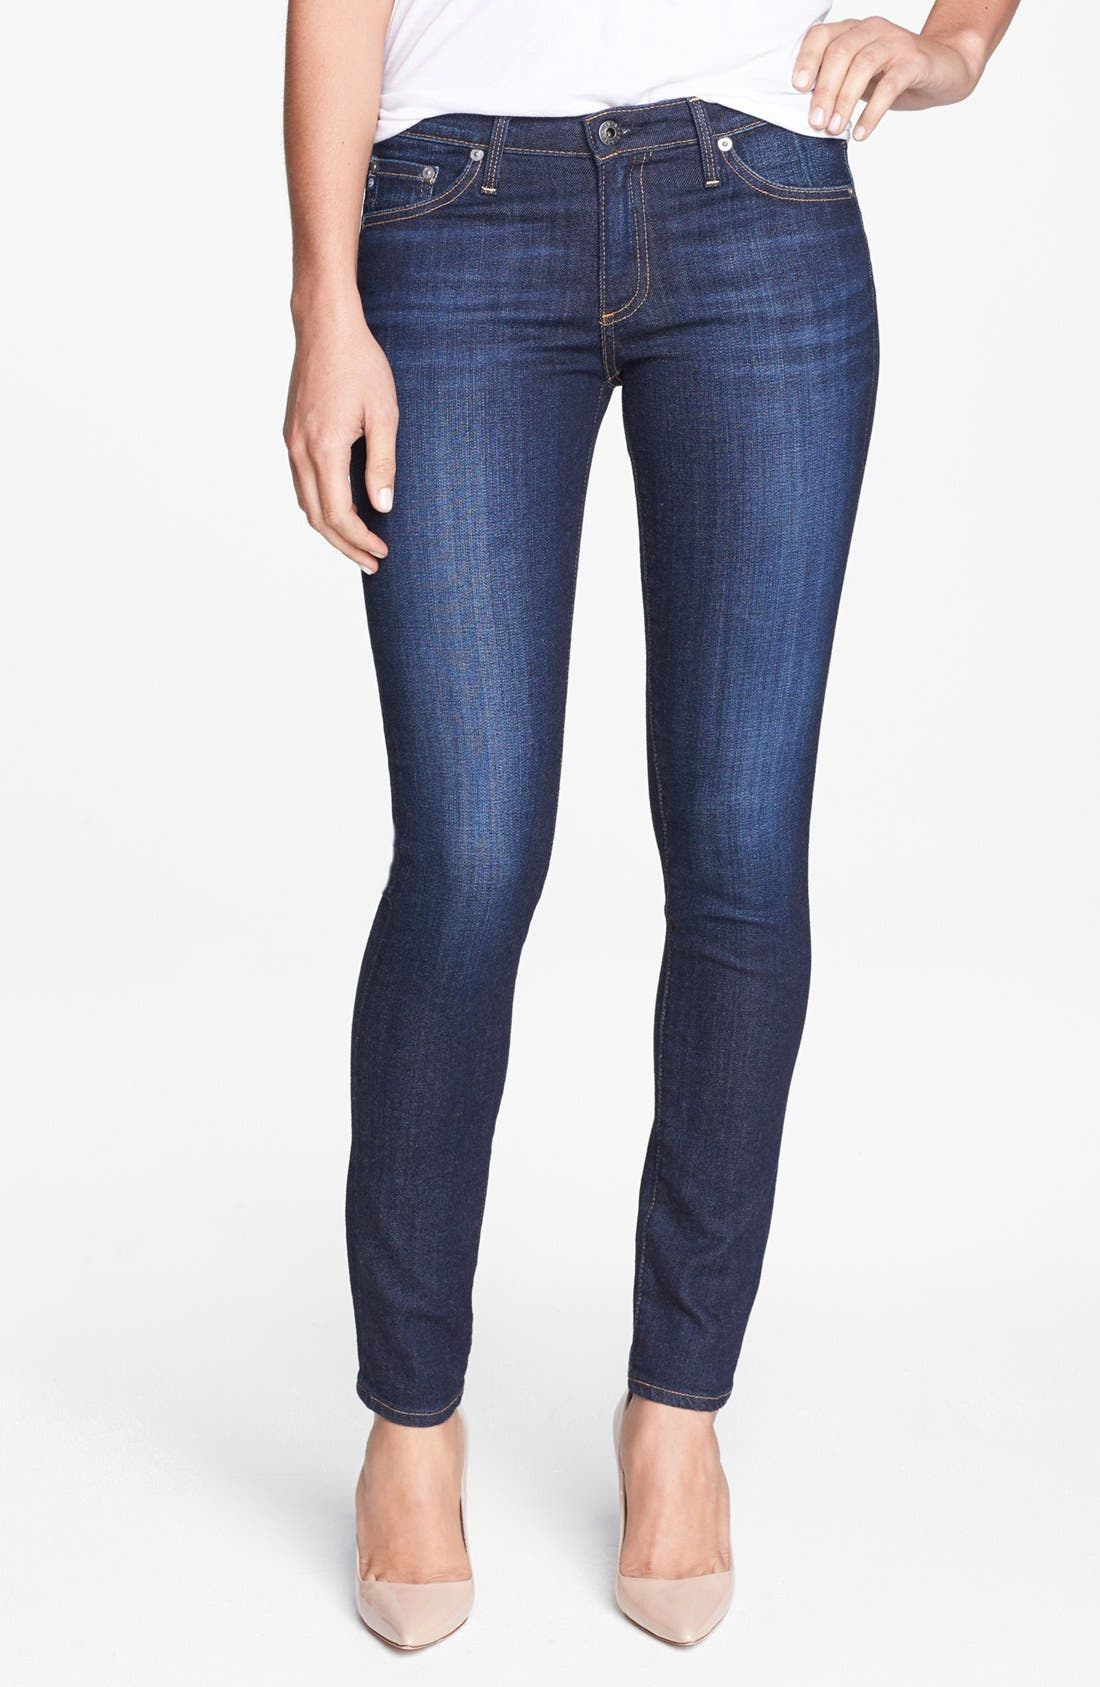 'The Stilt' Cigarette Leg Jeans,                         Main,                         color, Free